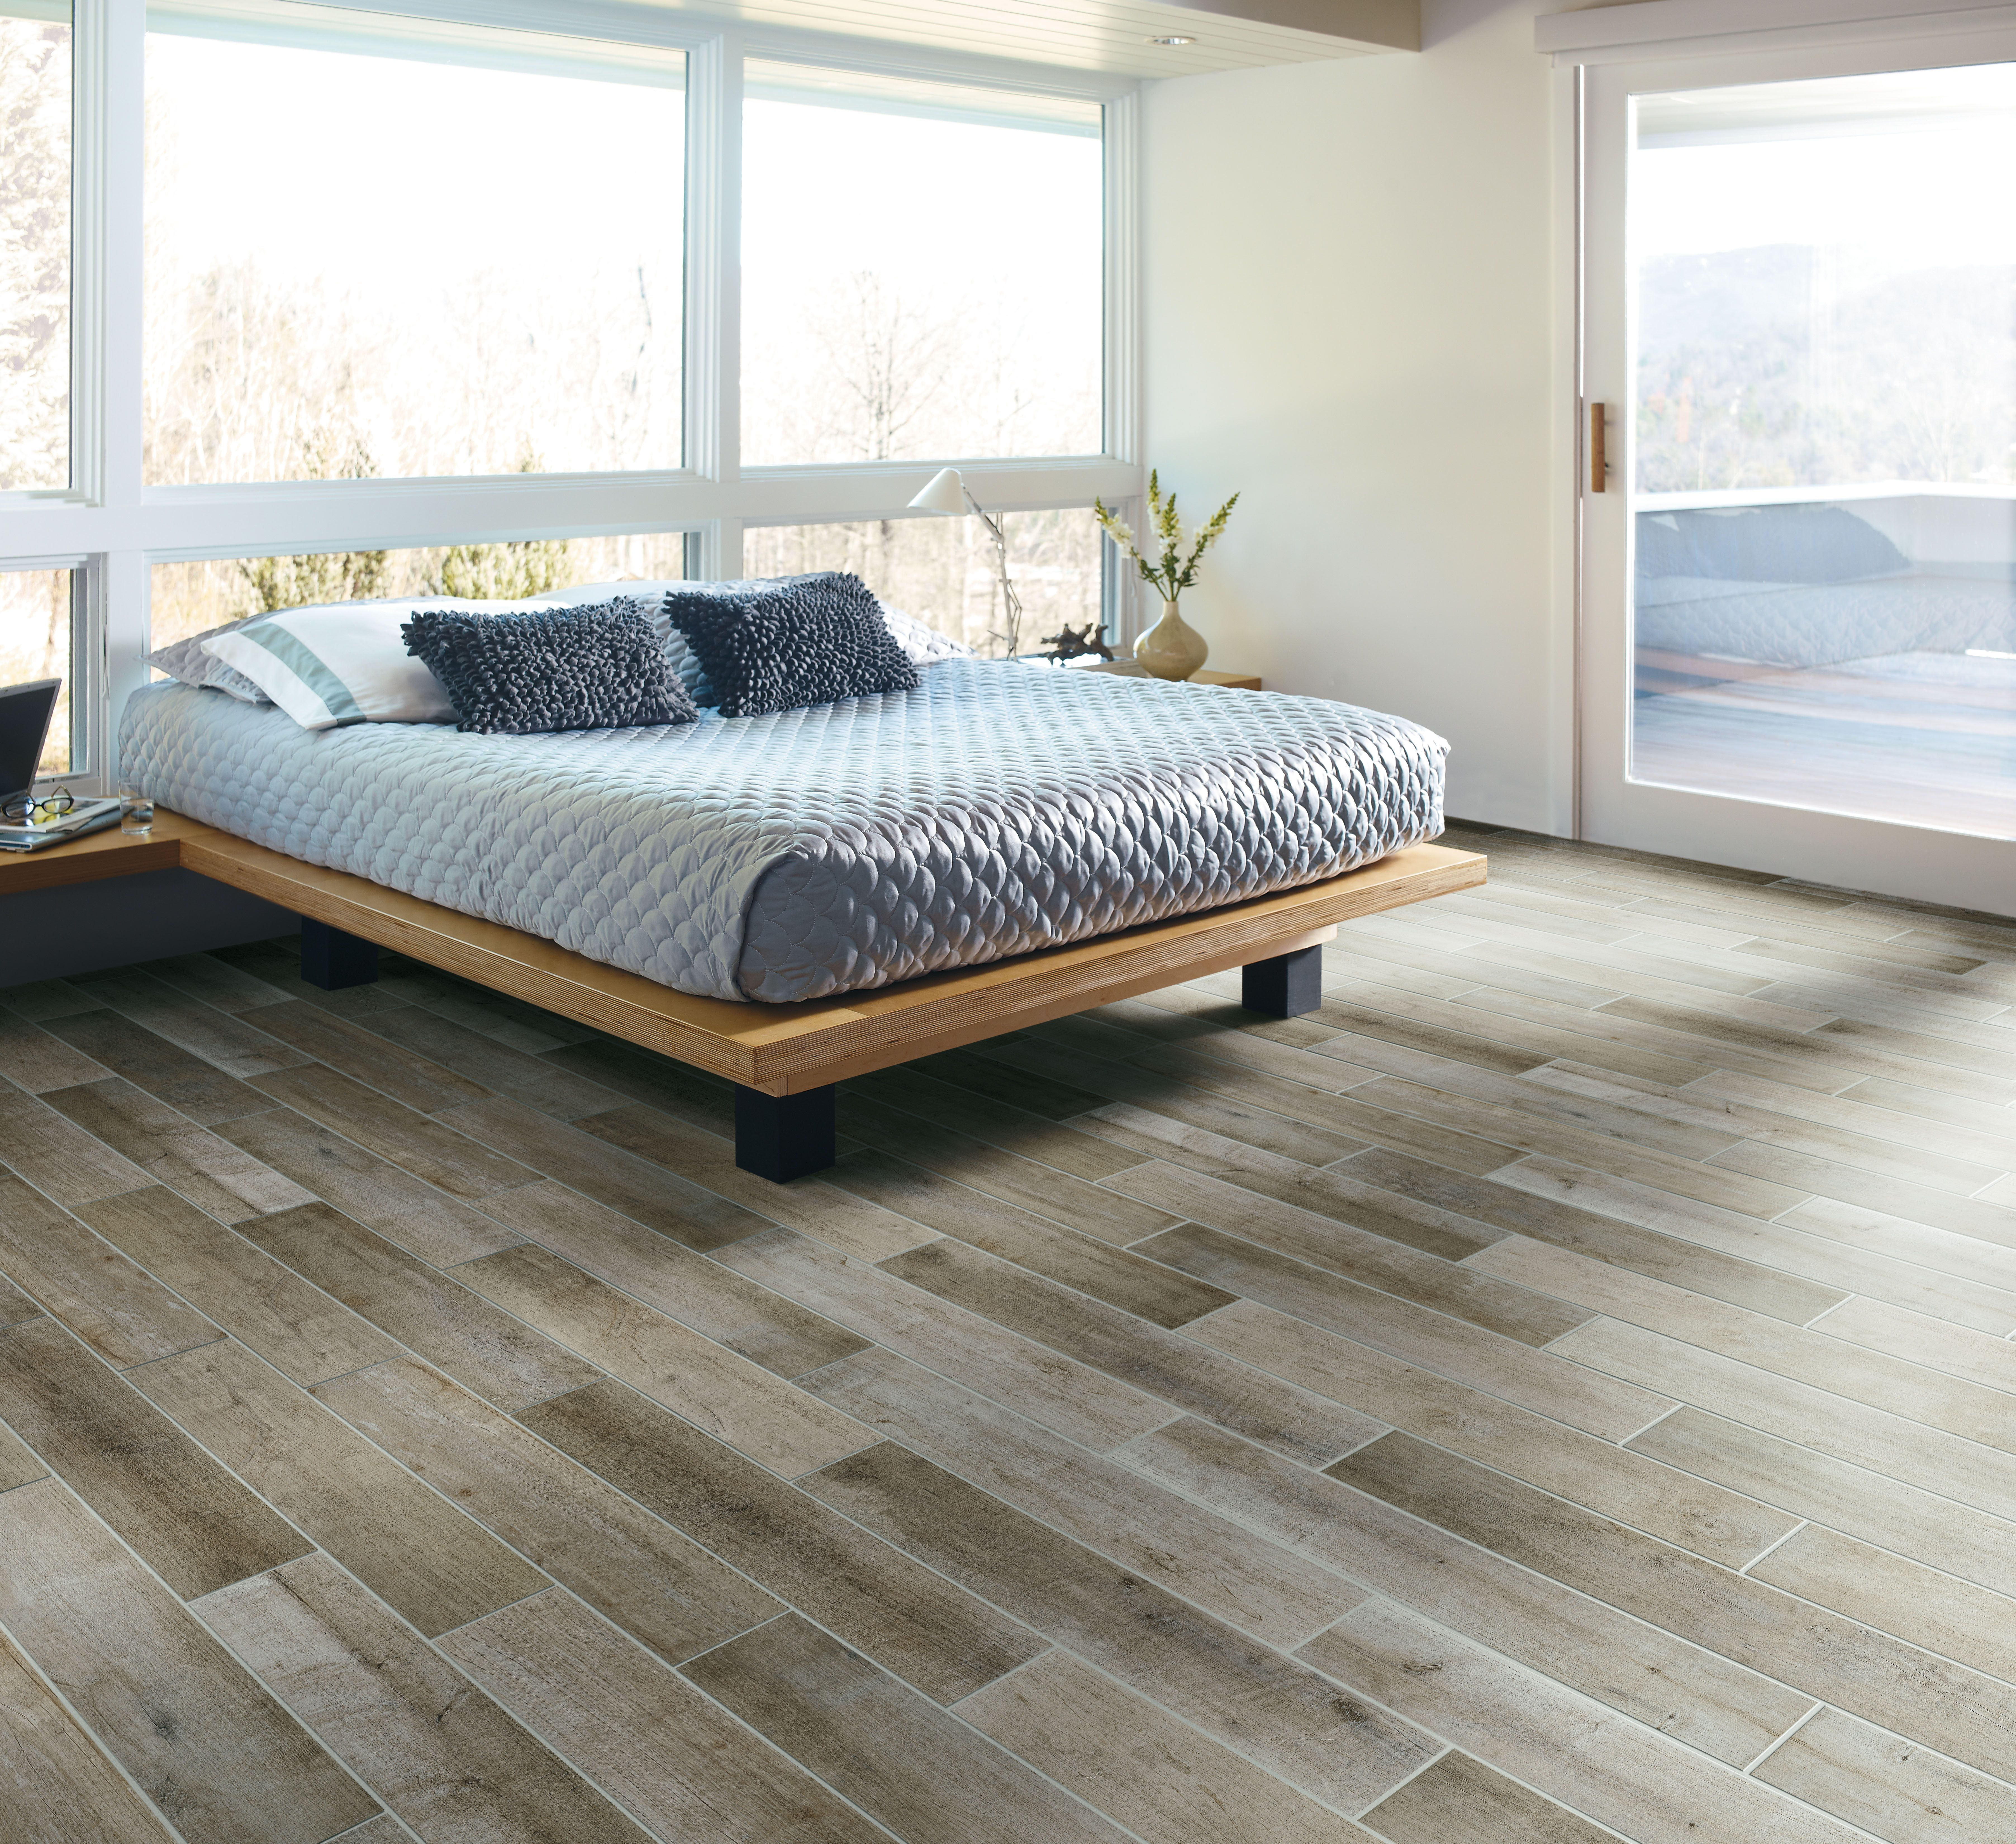 crossvilles speakeasy porcelain tile collection no trees harmed in the creation of this beautiful wood - Porcelain Tile Bedroom Interior